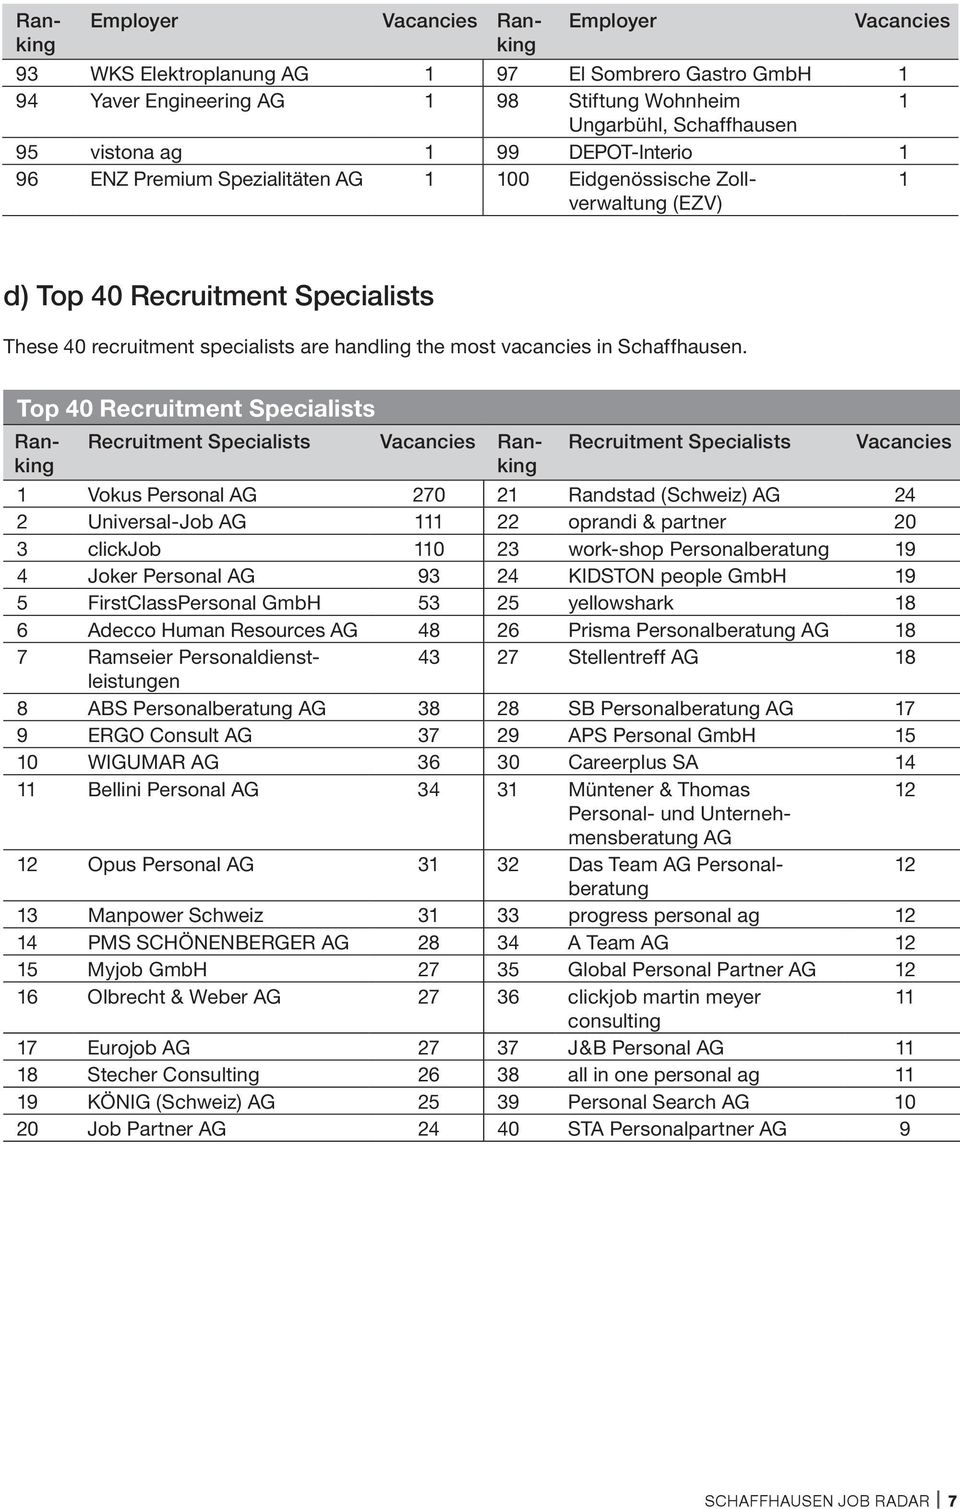 Top 40 Recruitment Specialists Employer Ranking Ranking Recruitment Specialists Ranking Recruitment Specialists 1 Vokus Personal AG 270 21 Randstad (Schweiz) AG 24 2 Universal-Job AG 111 22 oprandi &